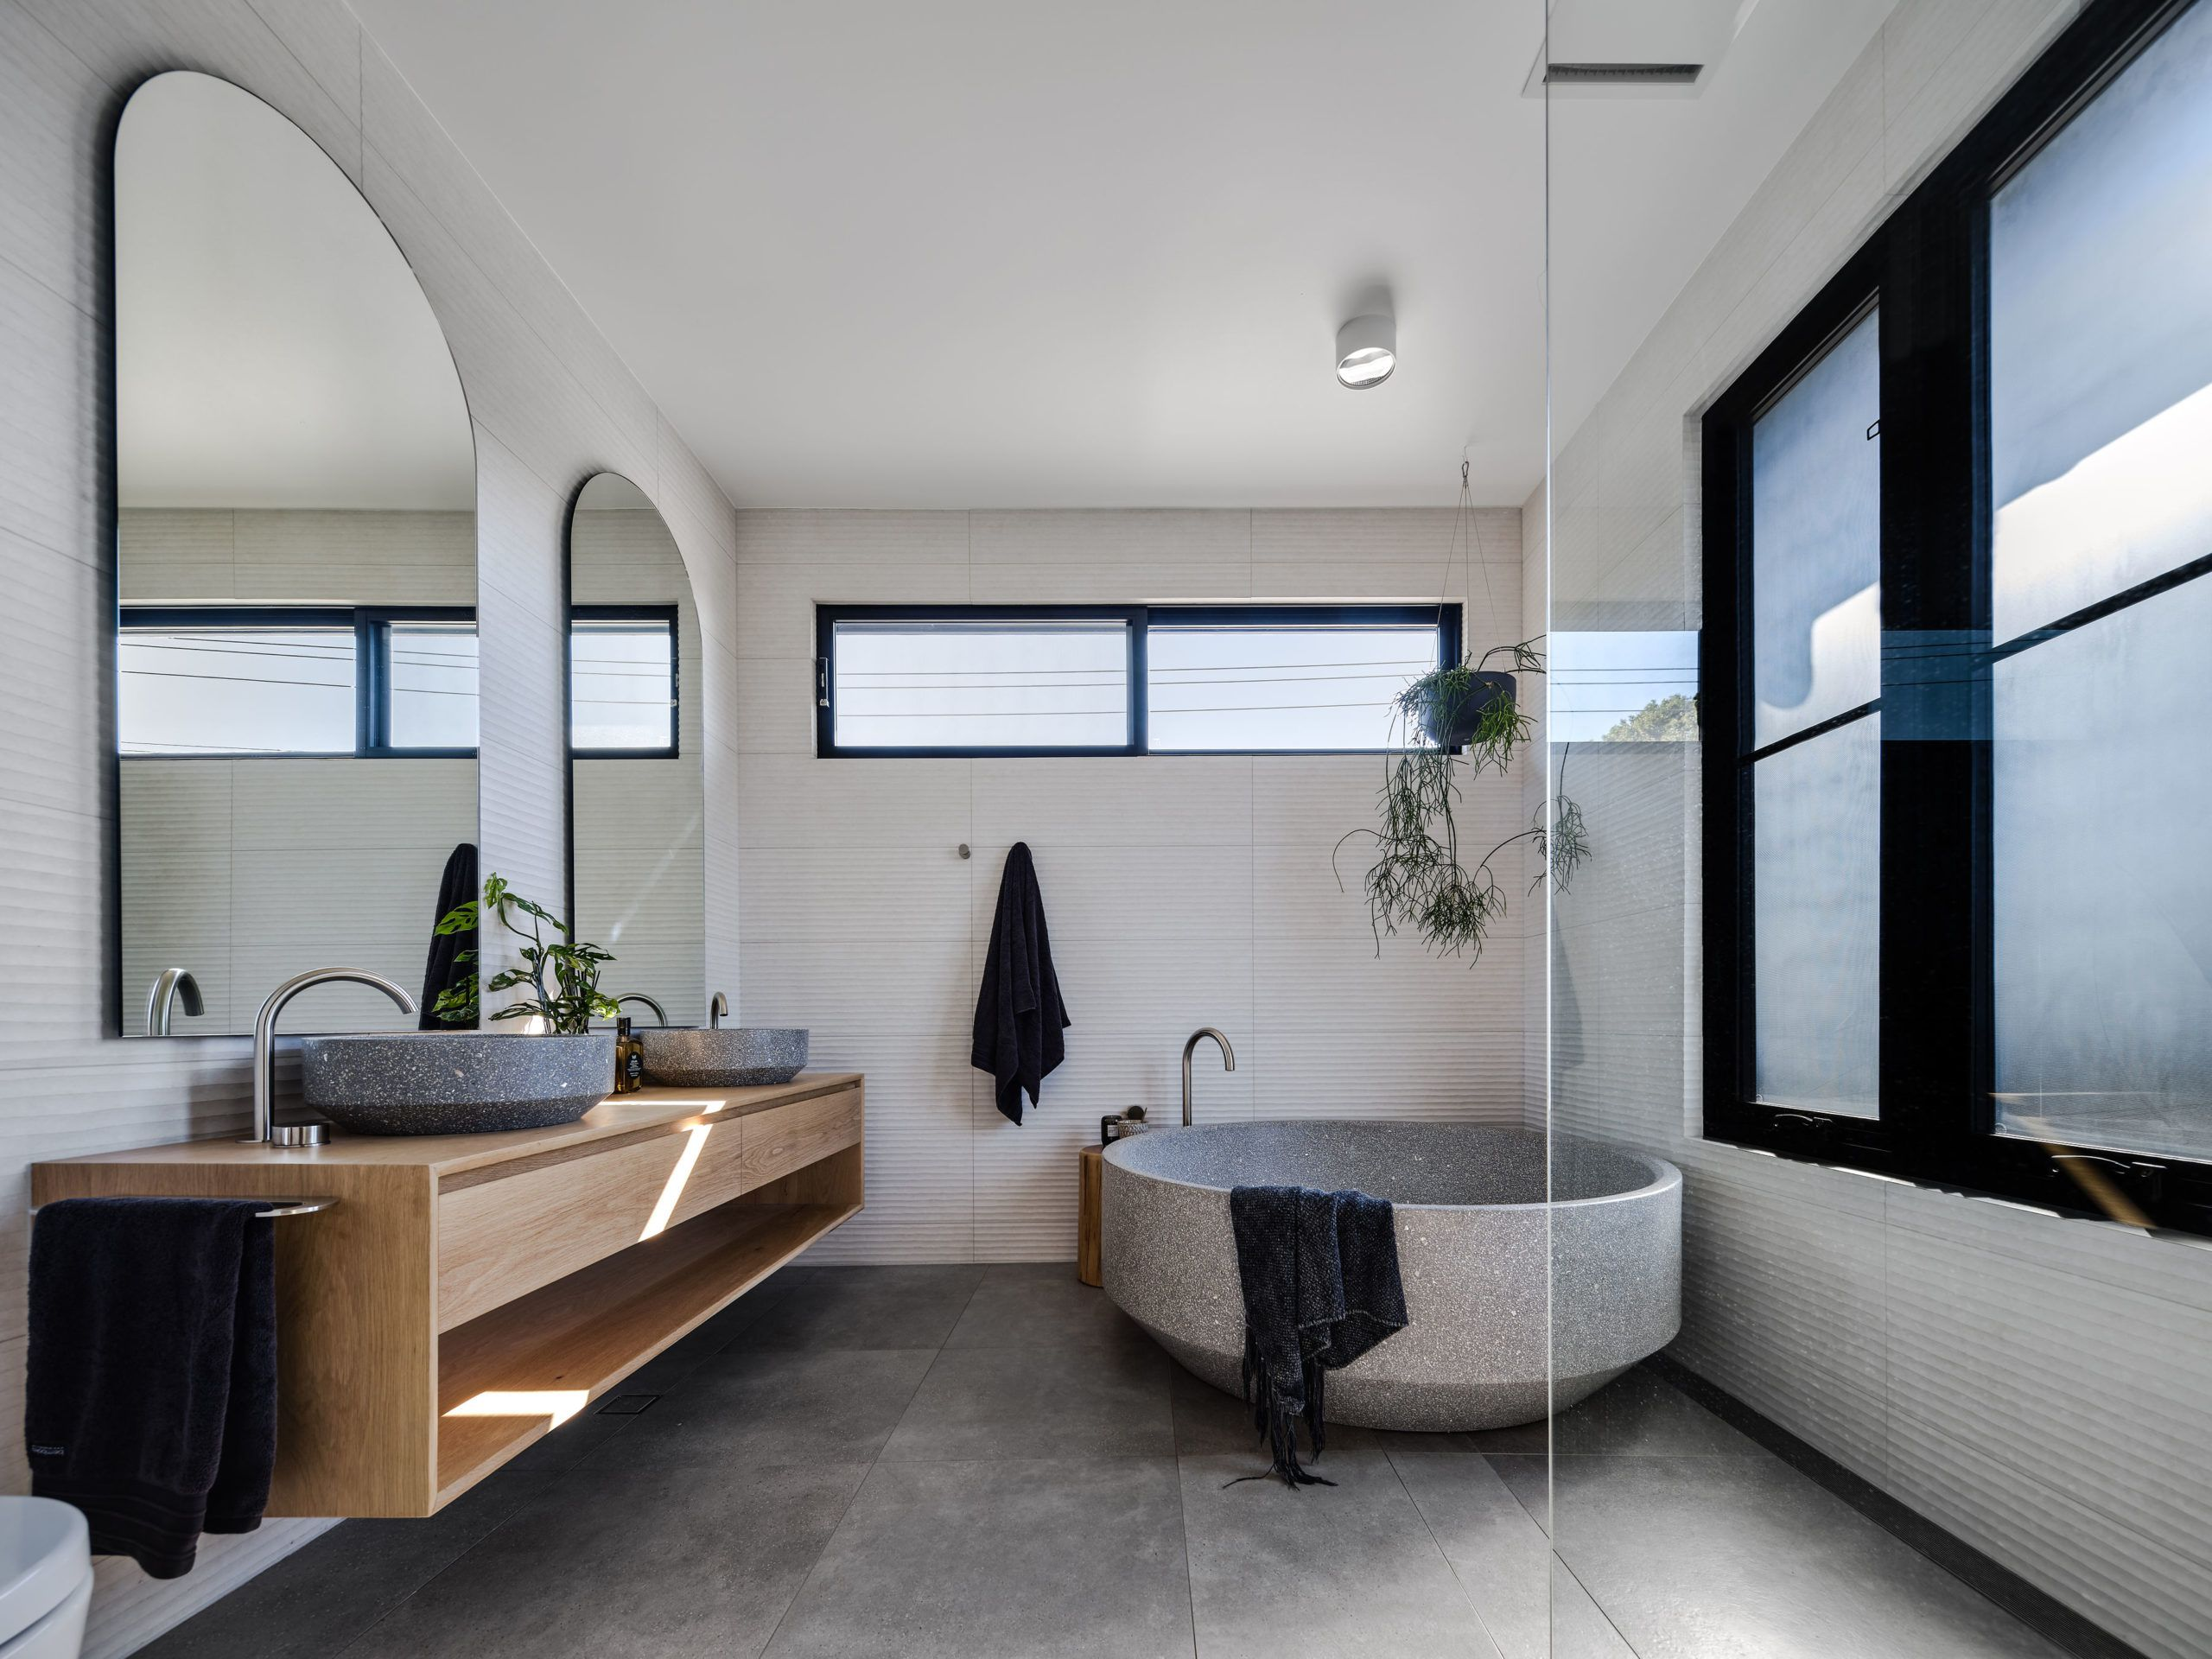 Bathroom • Barefoot Bay Villa designed by The Designory • Byron Bay